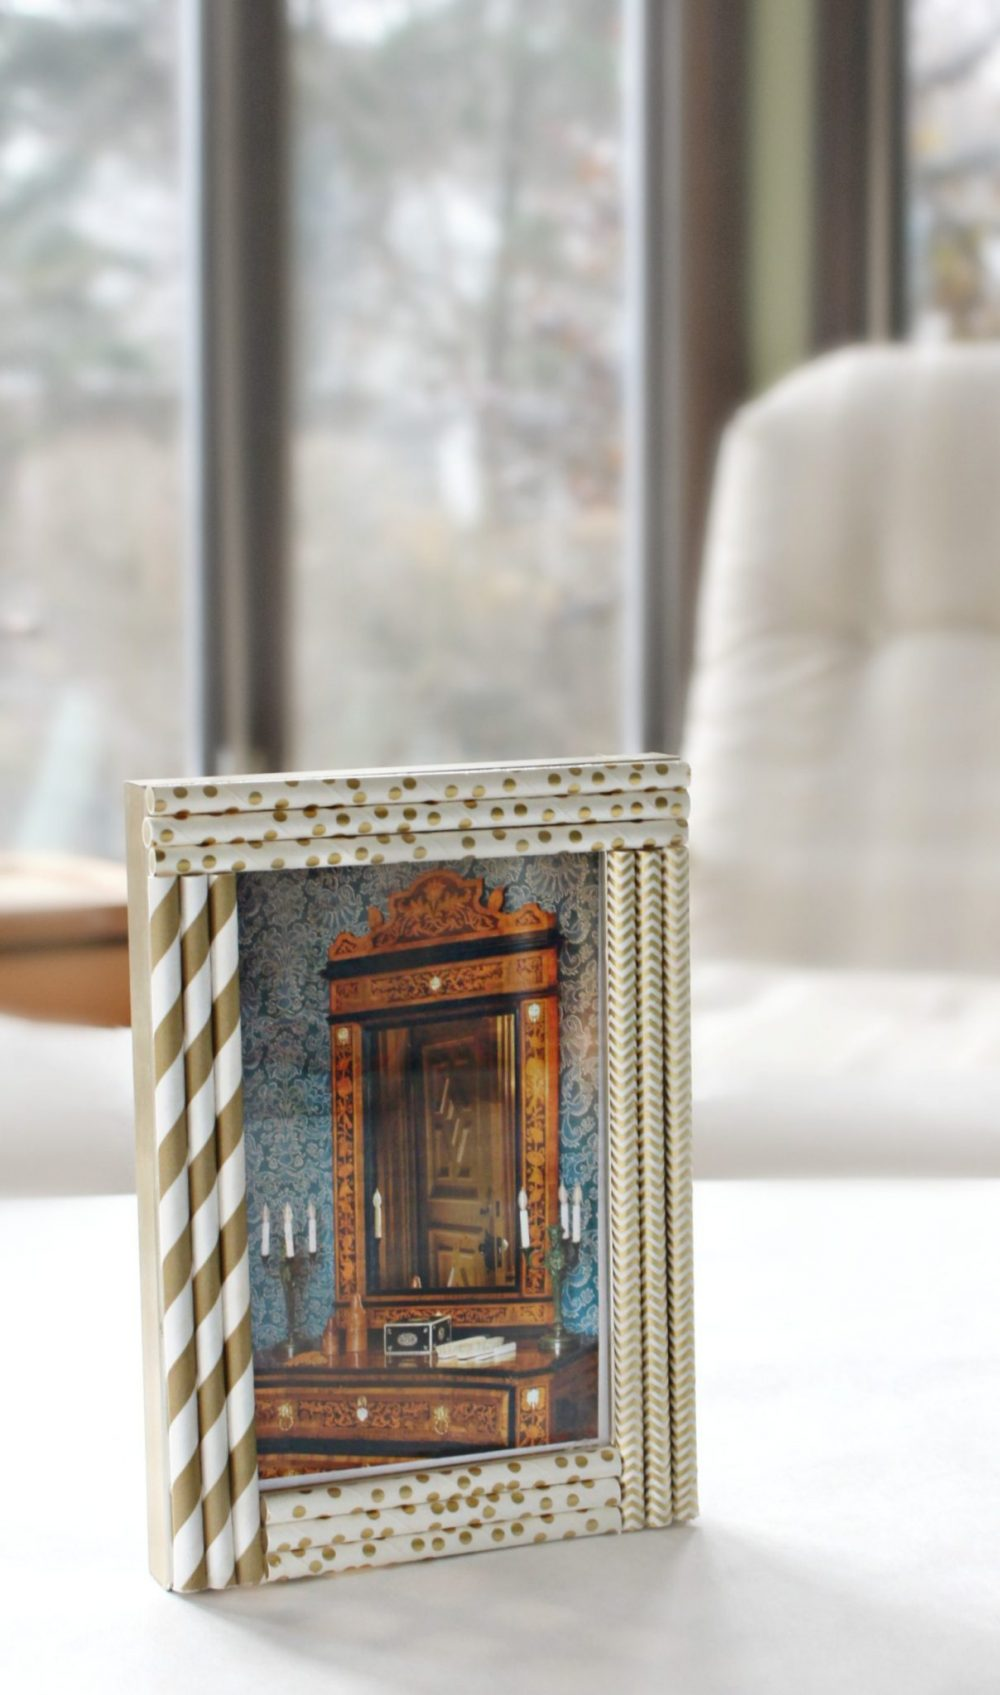 Learn how to decorate and personalize your own photo frame with this super easy straw frame craft!